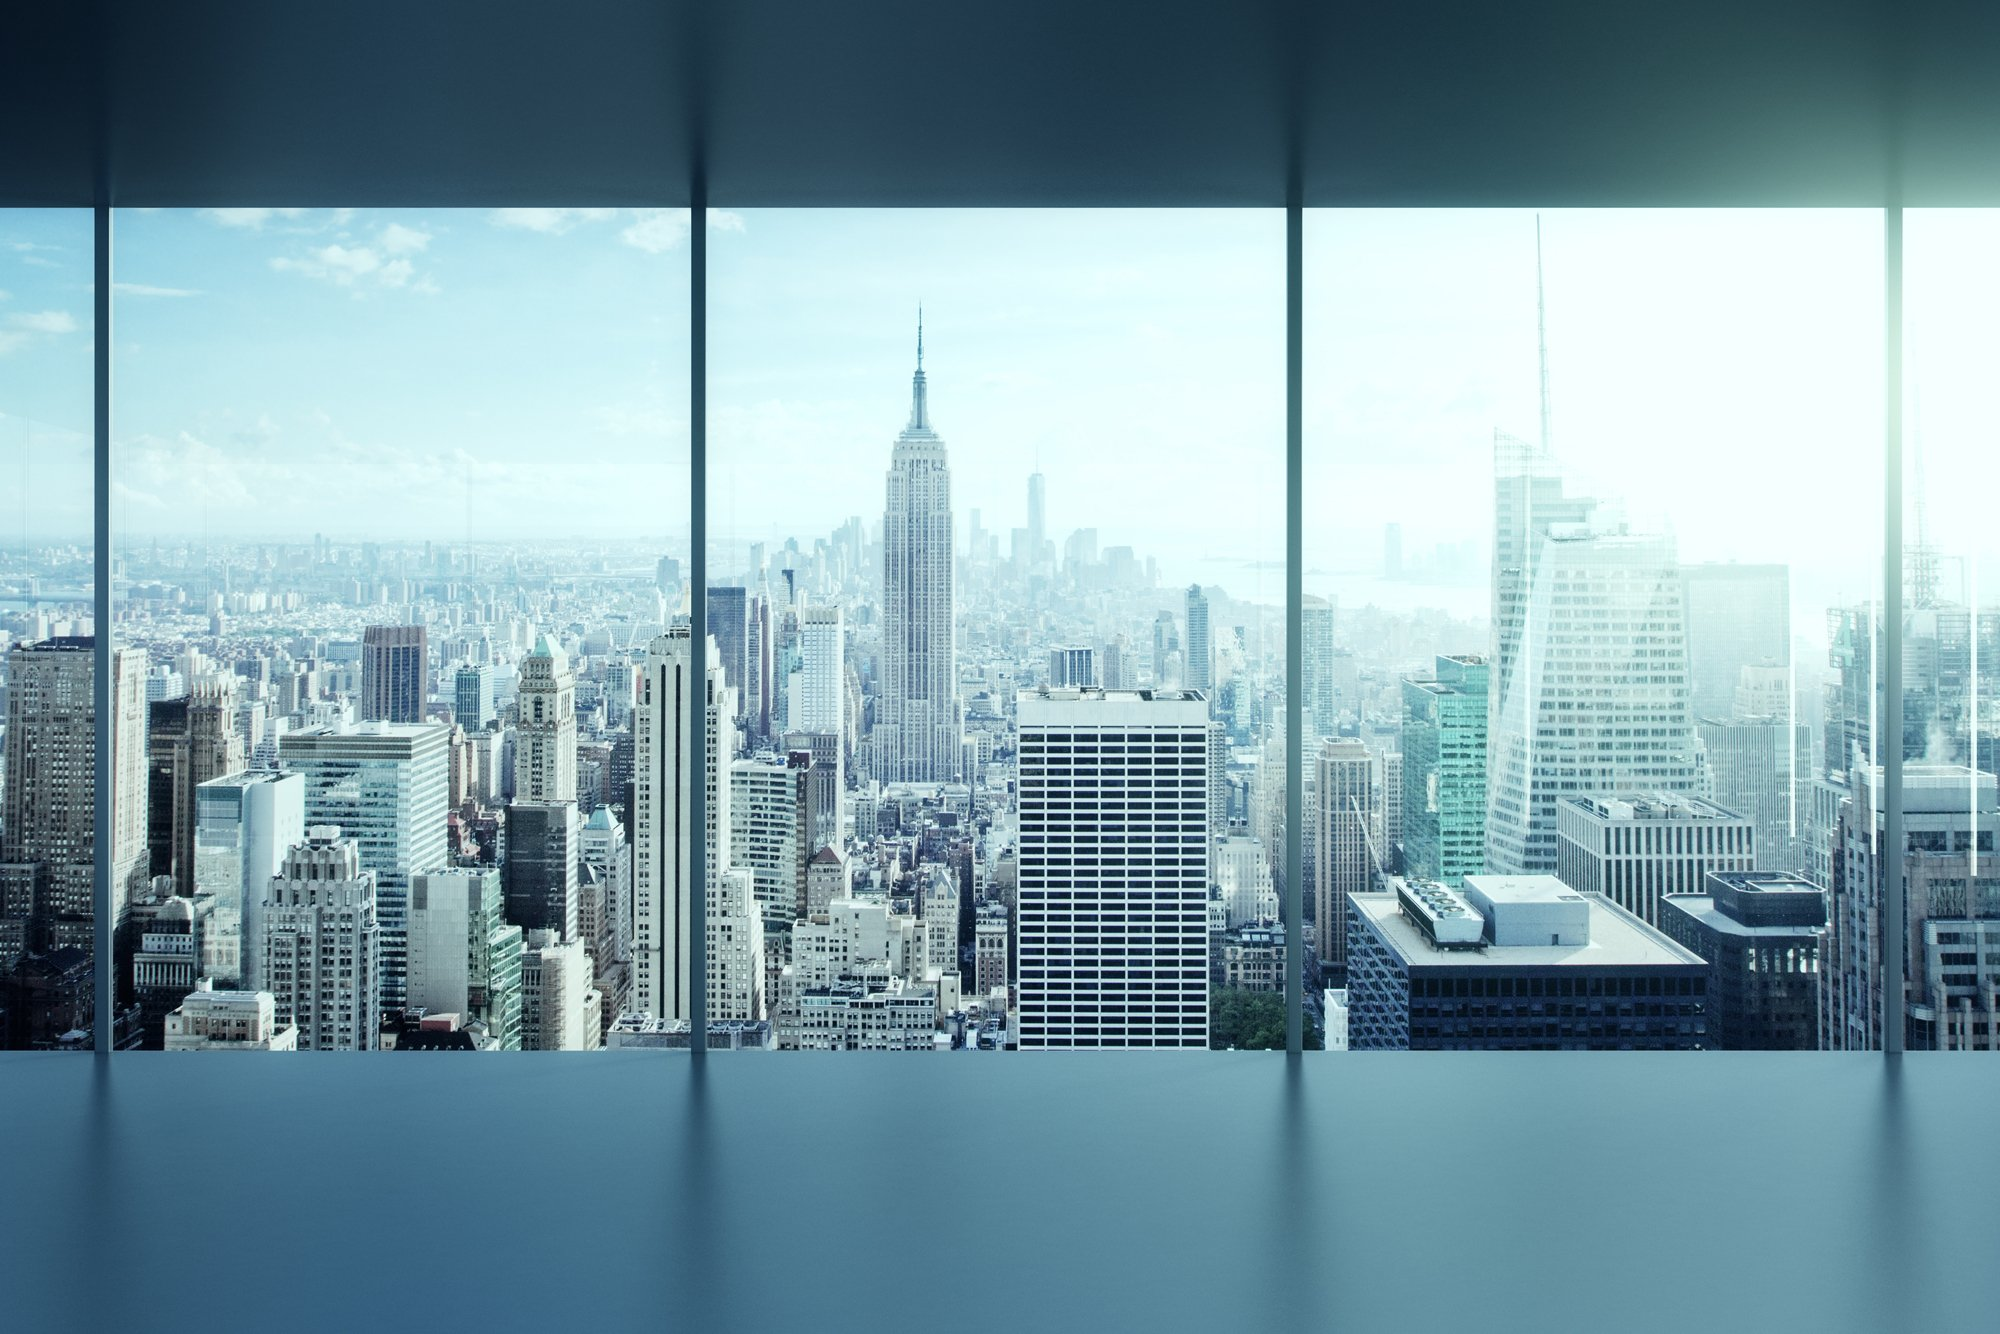 New York City Office Building looking out the window to the city